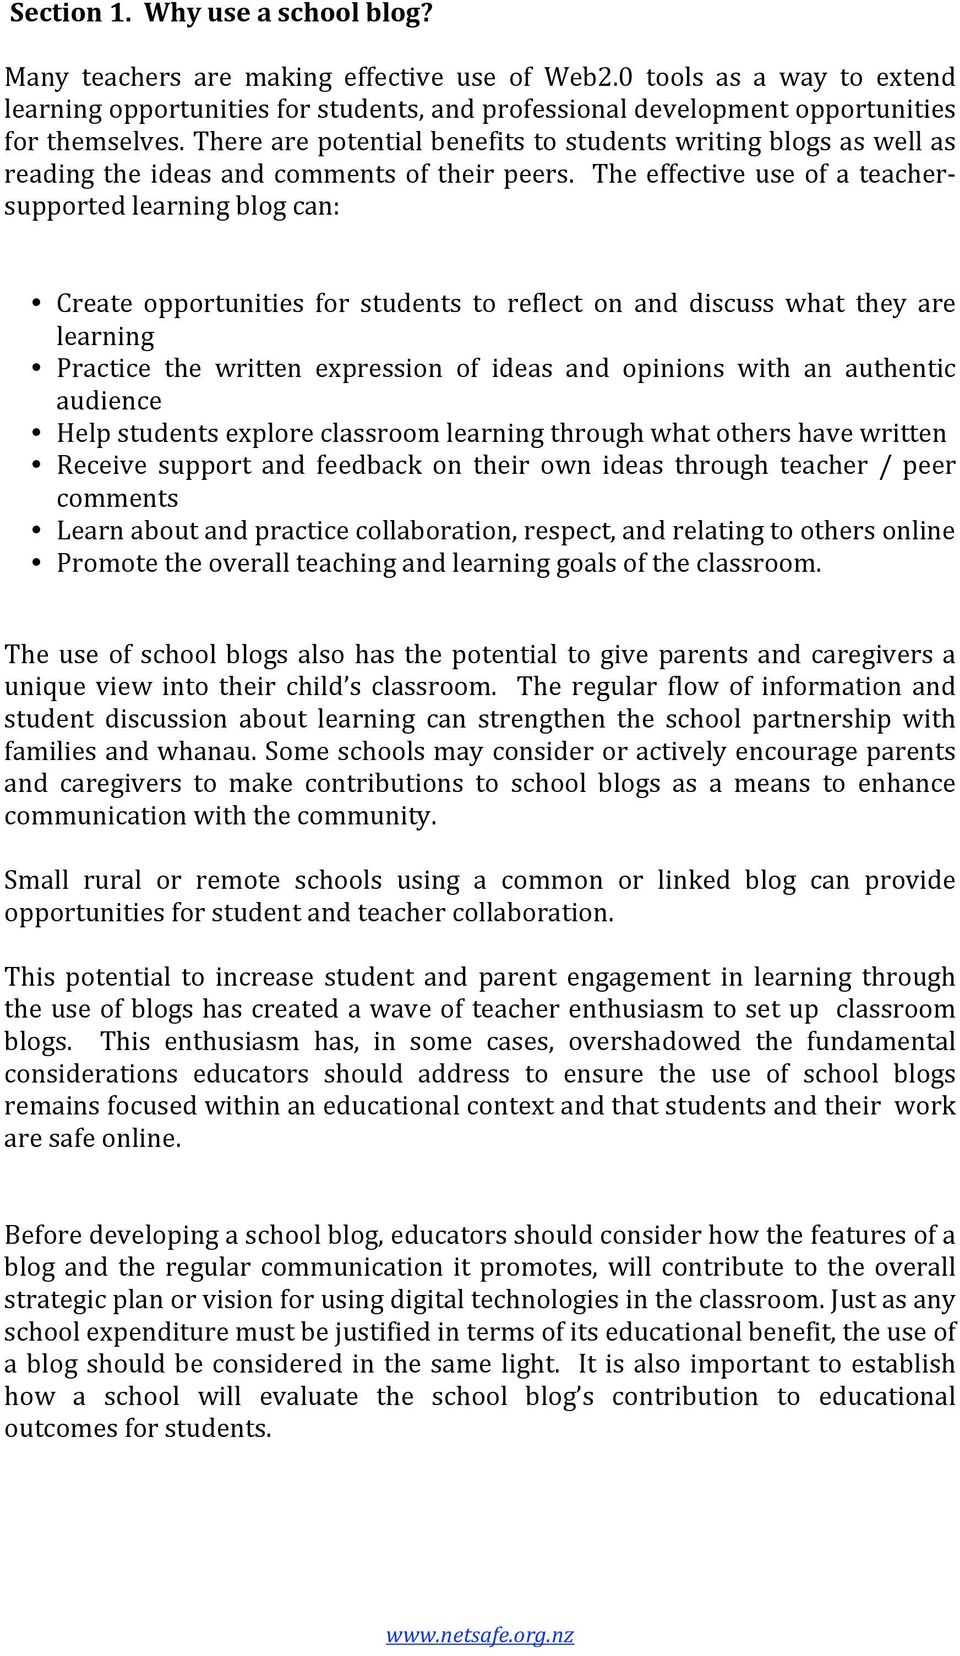 The effective use of a teachersupportedlearningblogcan: Create opportunities for students to reflect on and discuss what they are learning Practice the written expression of ideas and opinions with